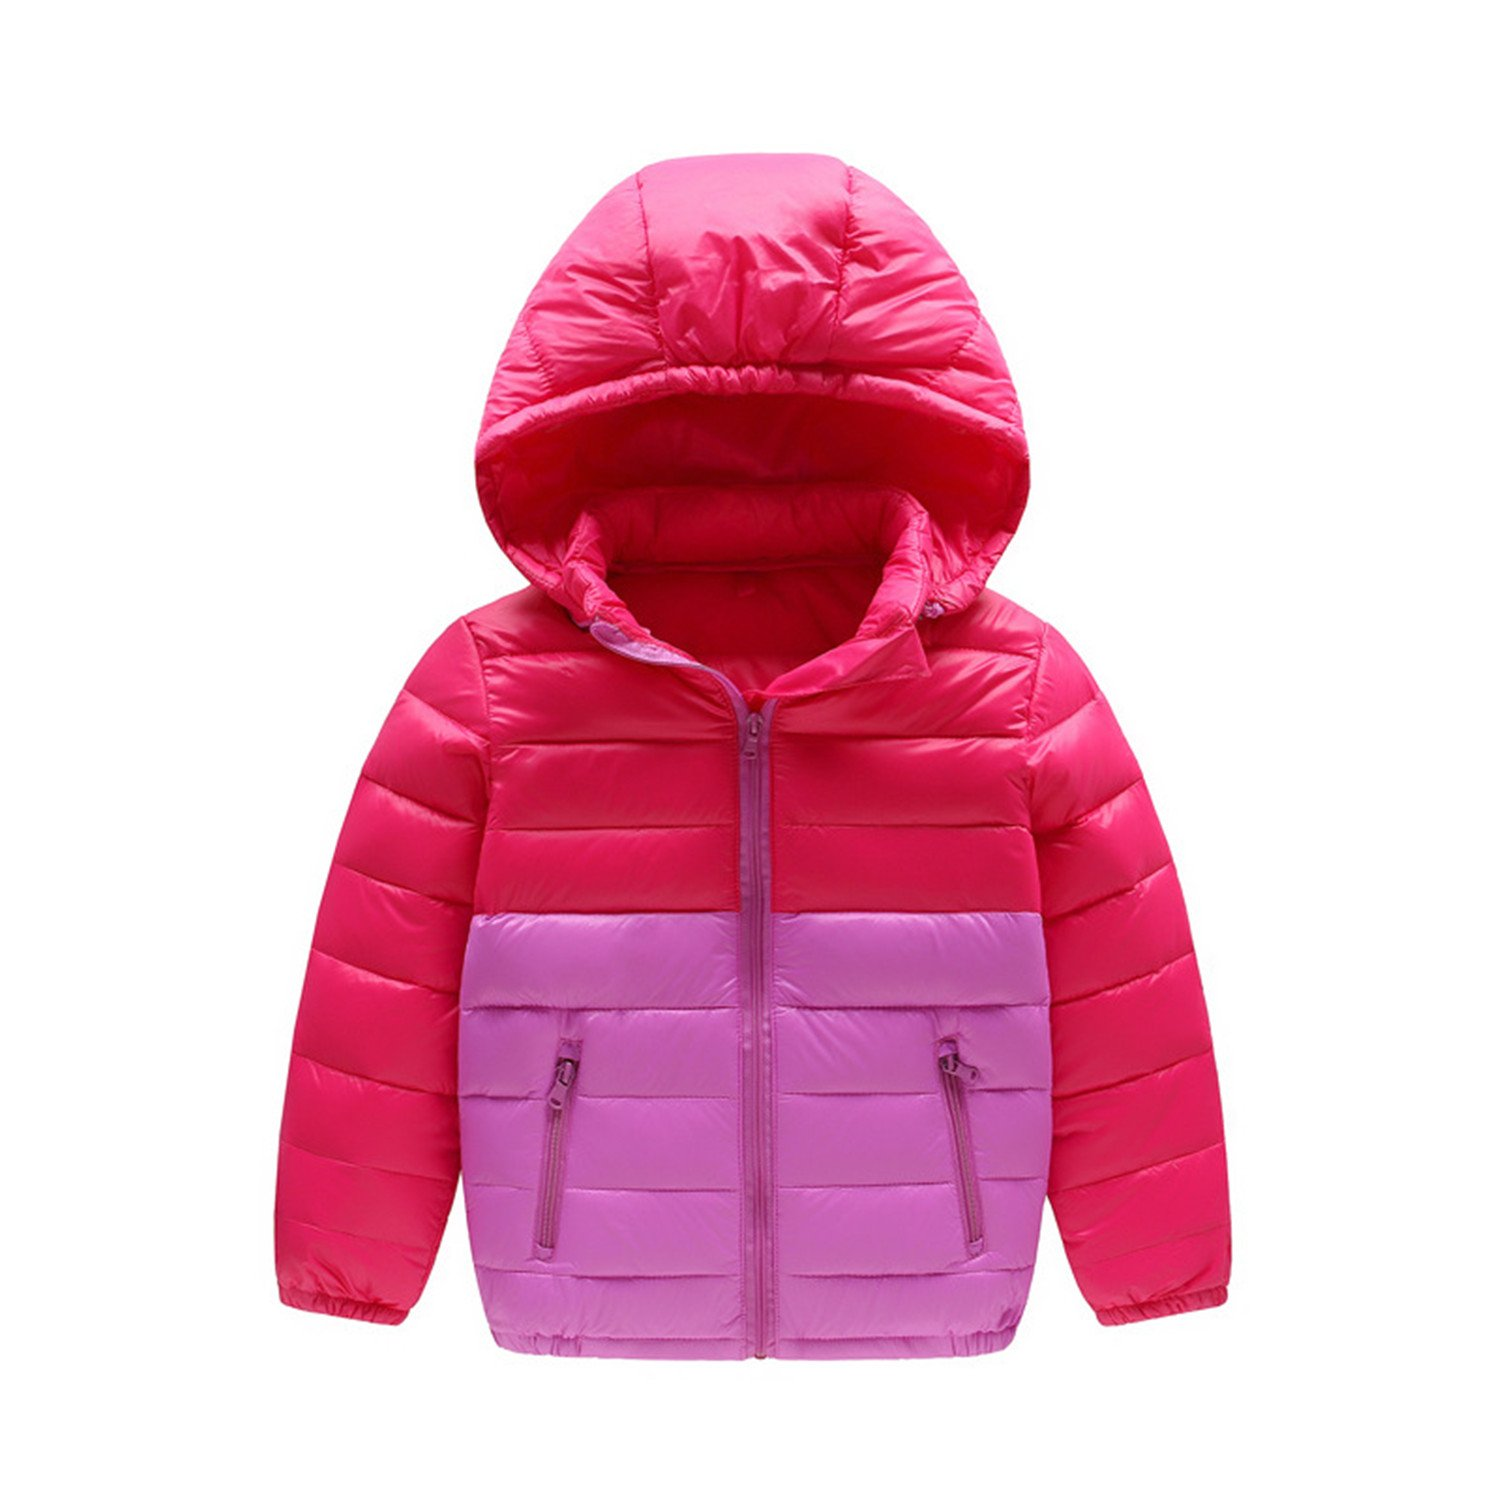 Baqijian Girls Parka Winter Coat Fur Children Down Jacket Lightweight Boy Girl Cap Splicing as picture11 7